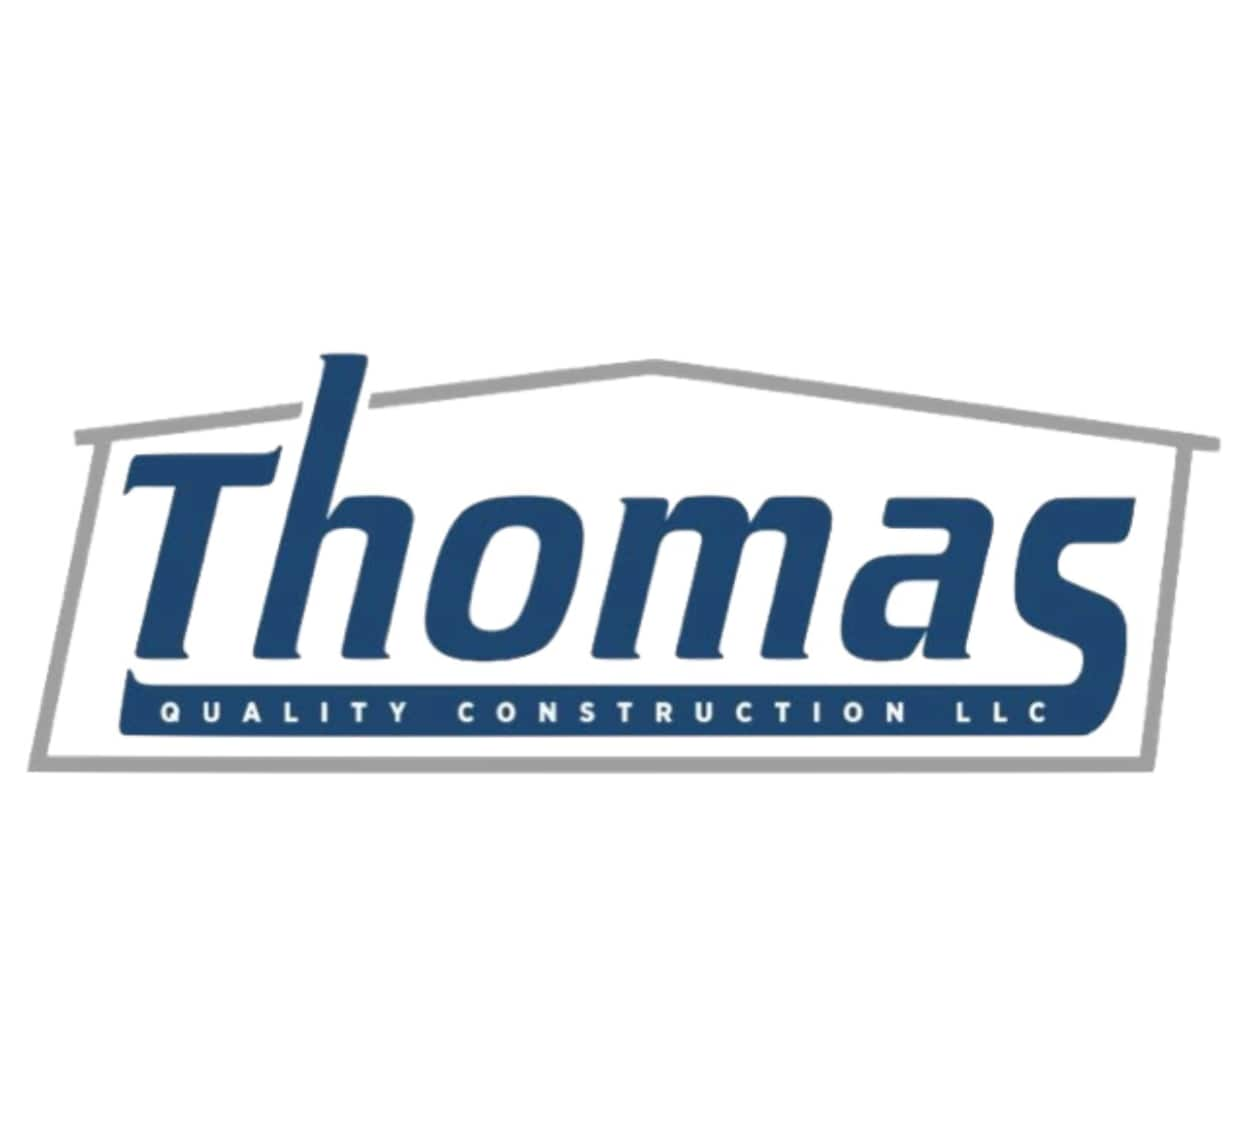 Thomas Quality Construction